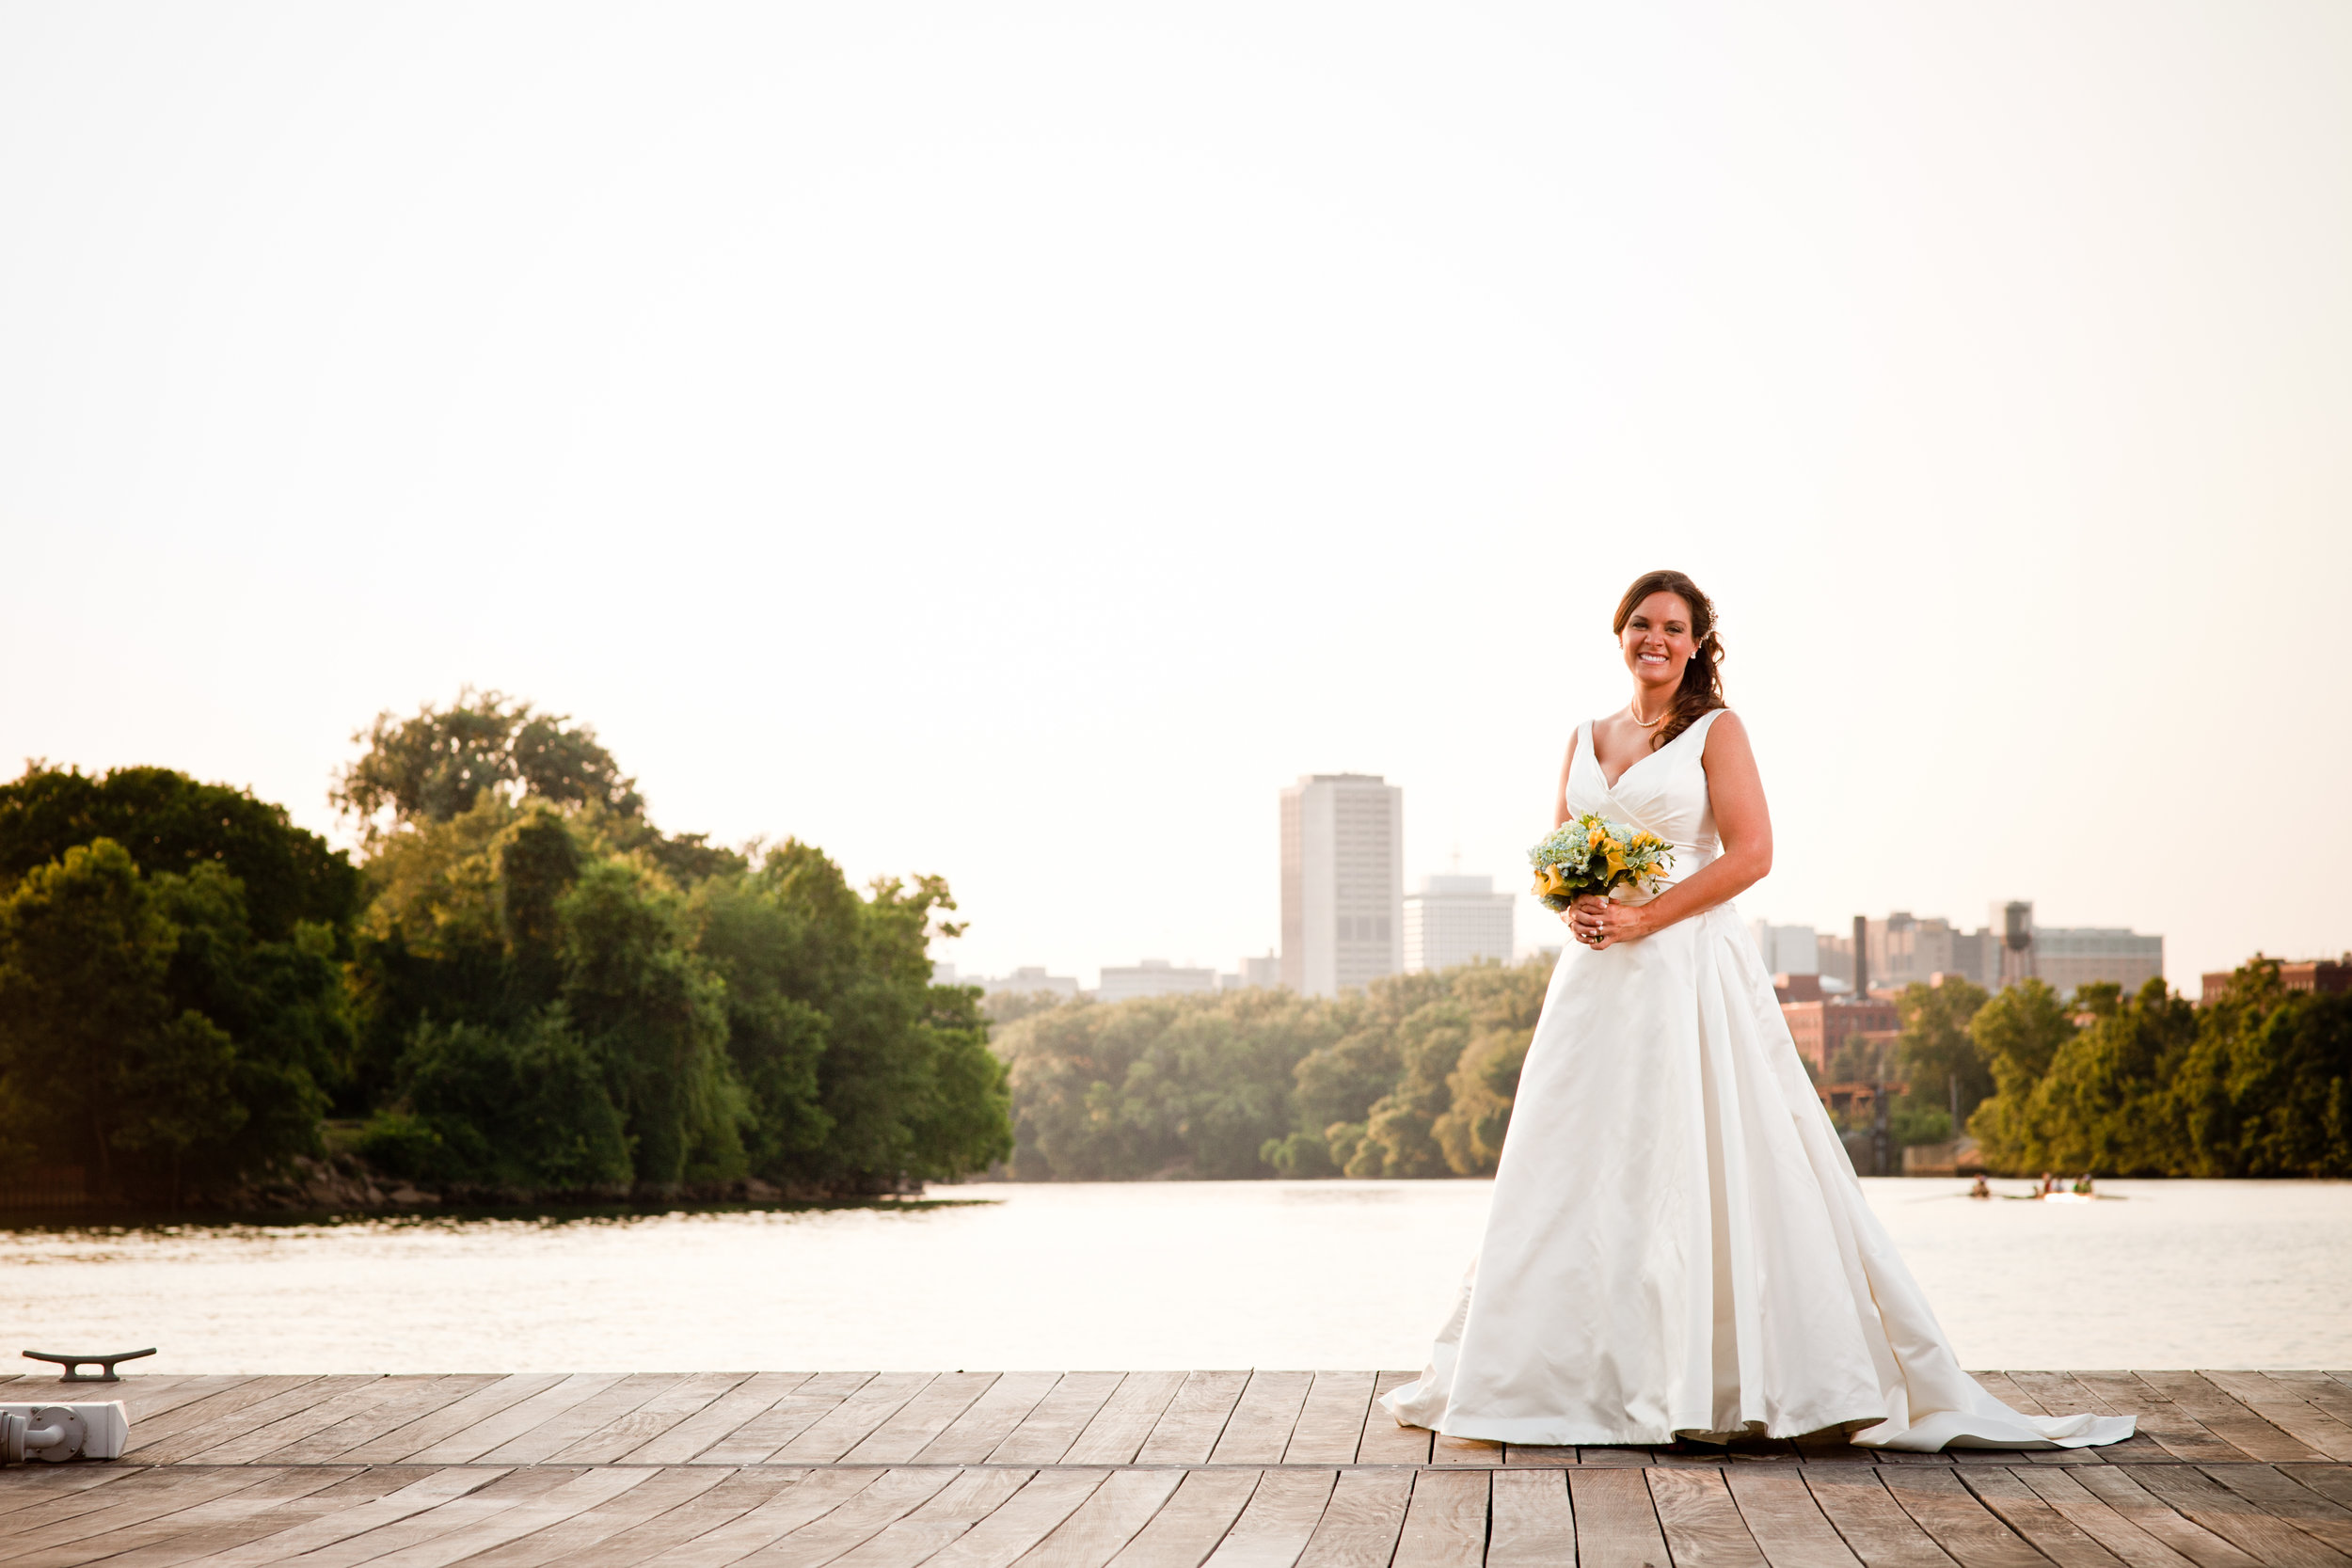 Boathouse-Richmond-Bride.jpg